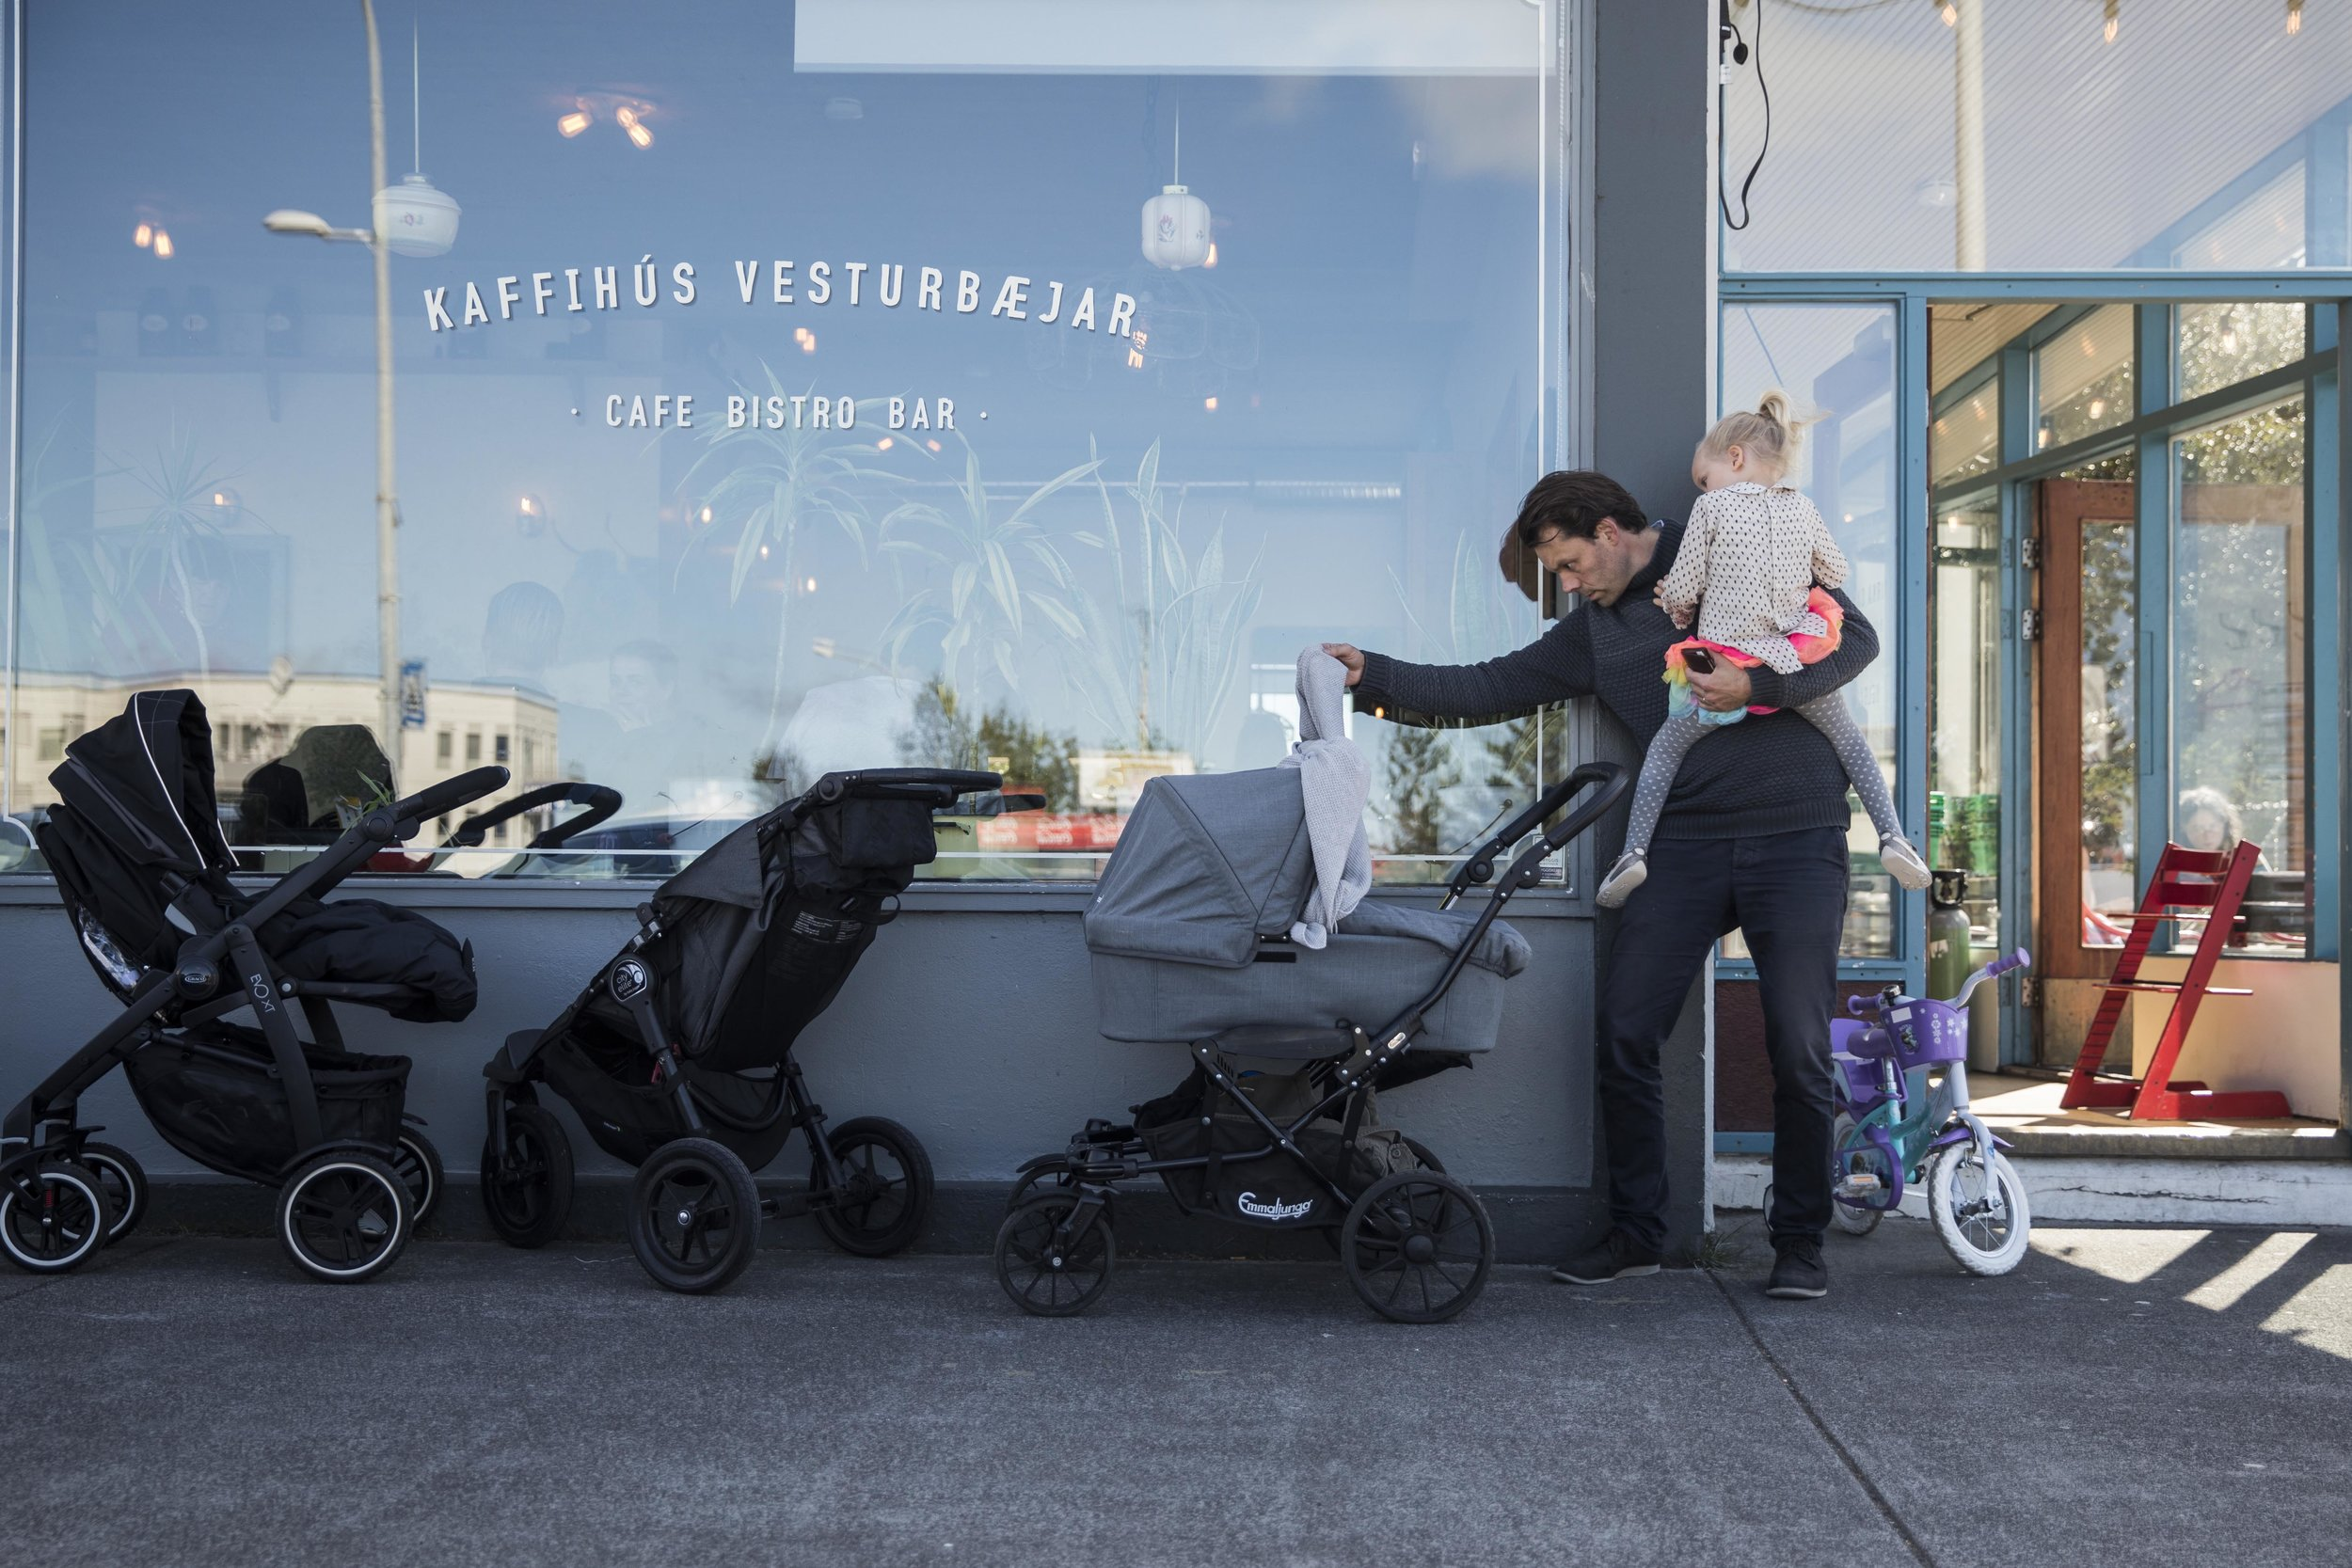 Björn Thors checks on his twin babies while he and his five-year-old daughter, Bryndis, have lunch at a cafe near their home in Reykjavik.